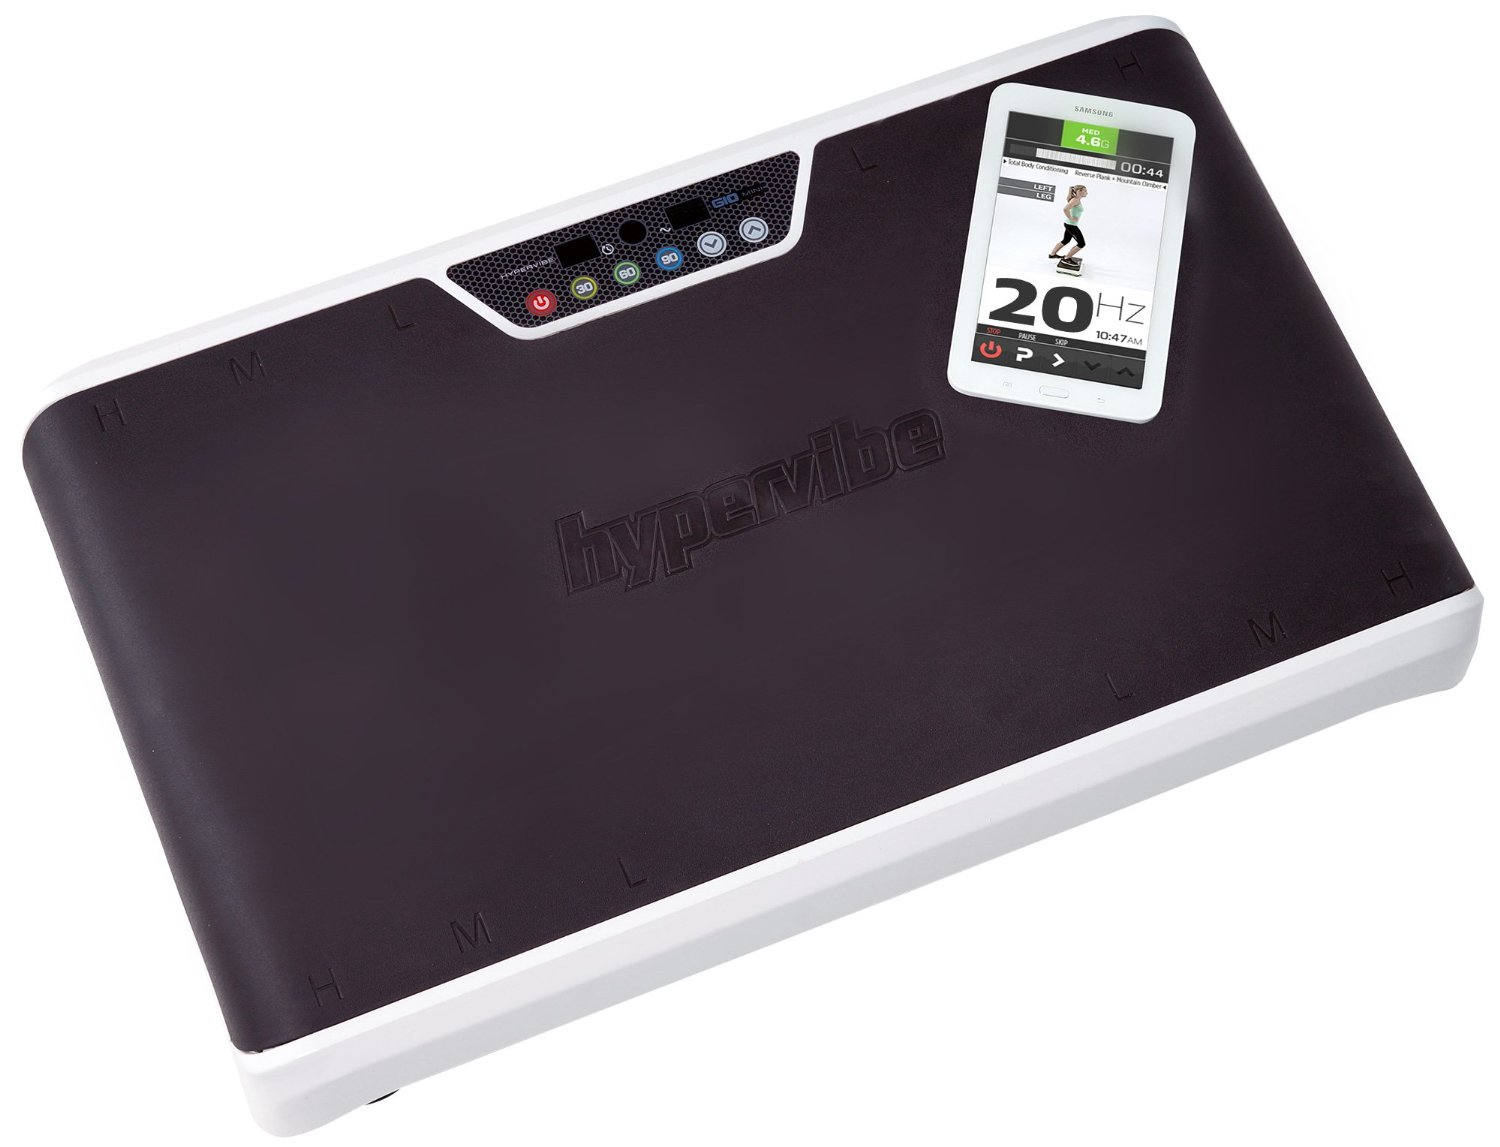 Buy Hypervibe G-10 Whole Body Vibration Machine with Mobile